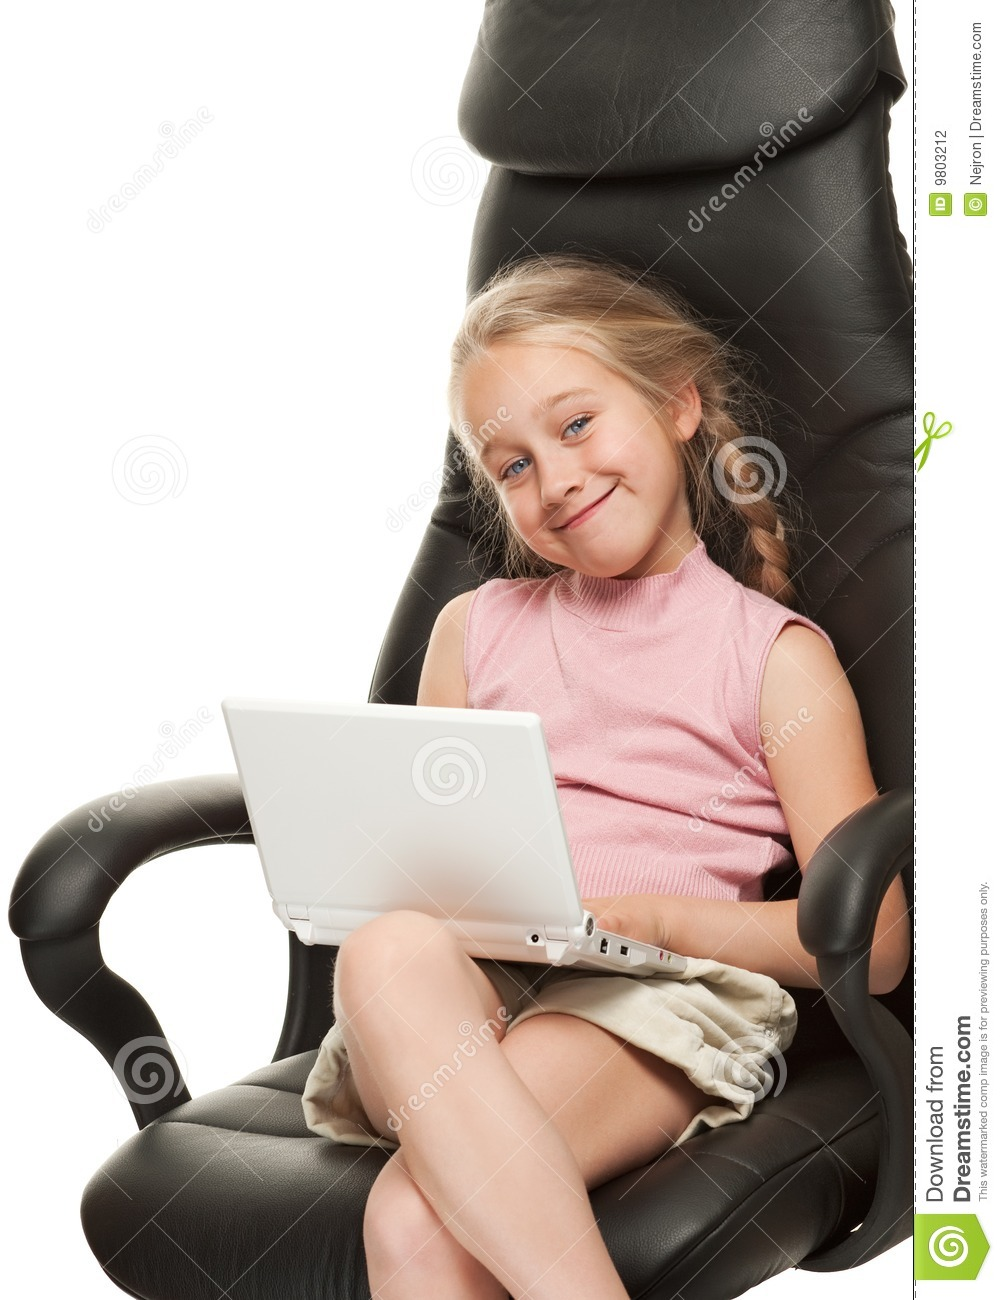 girl with laptop sitting on a chair stock photography